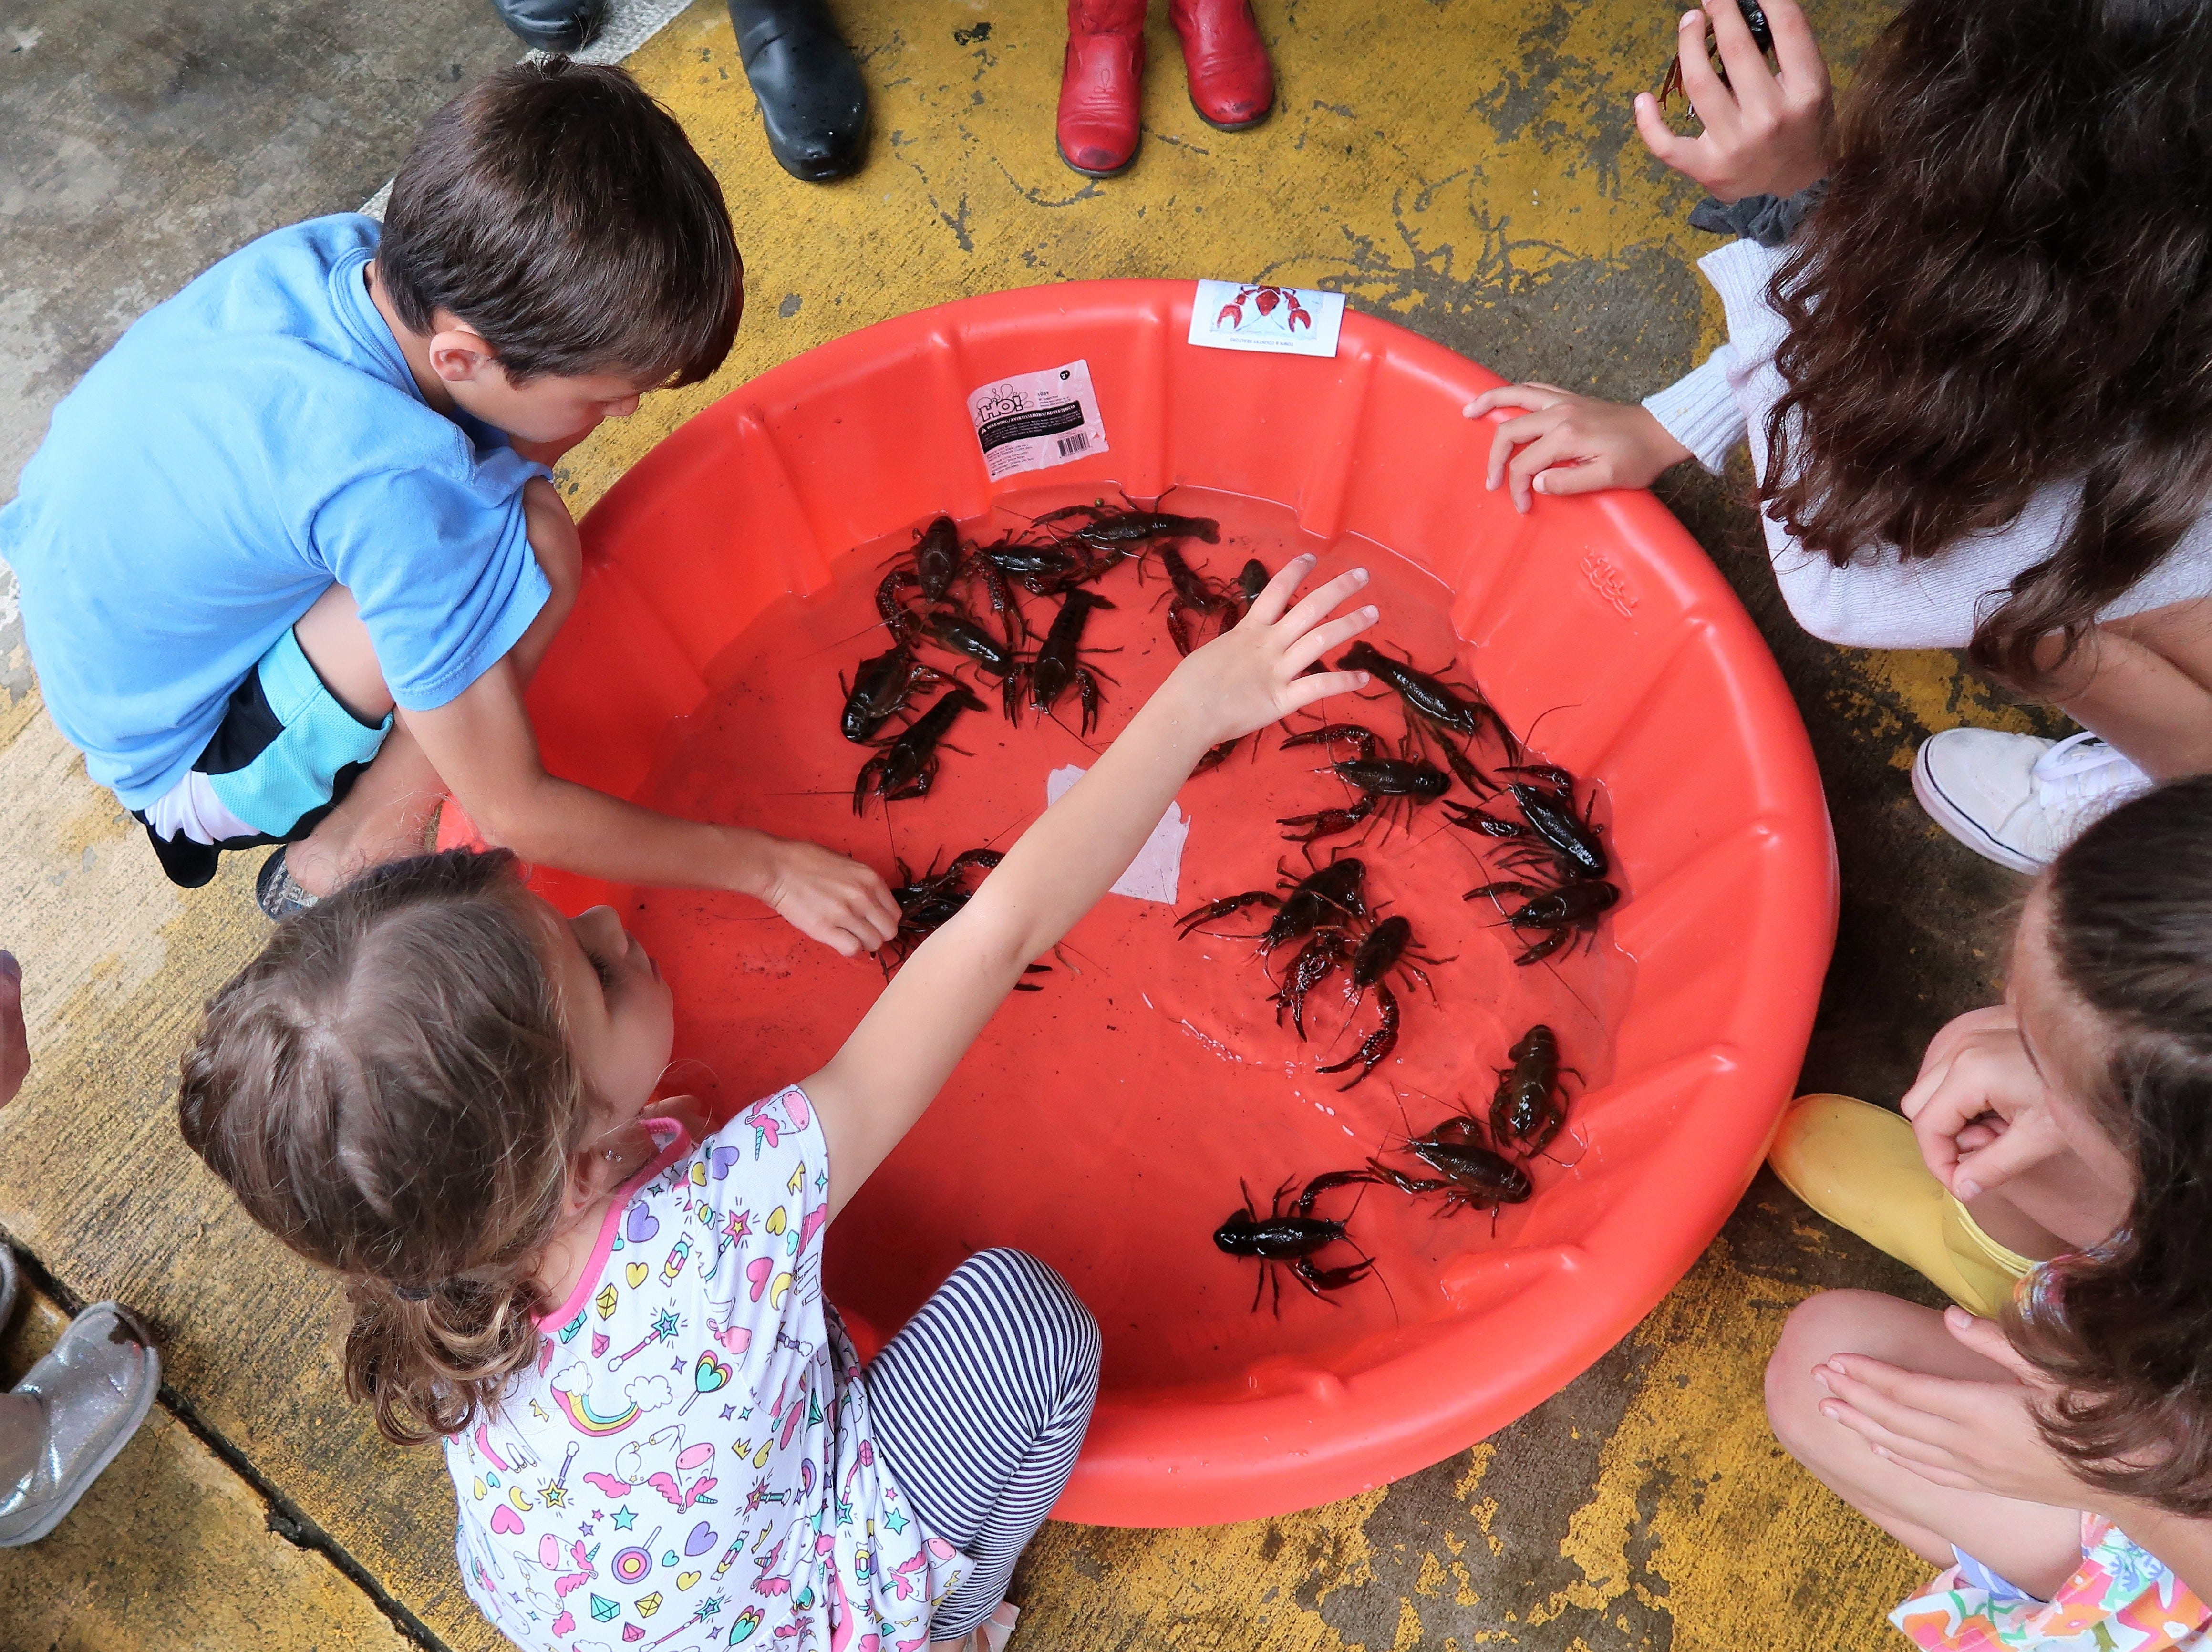 Children observe and play with a small pool of crawfish at the Second Annual Crawfest fundraiser for the Scarlet Rope Project at the West Tennessee Farmer's Market in Jackson on May 4, 2019.